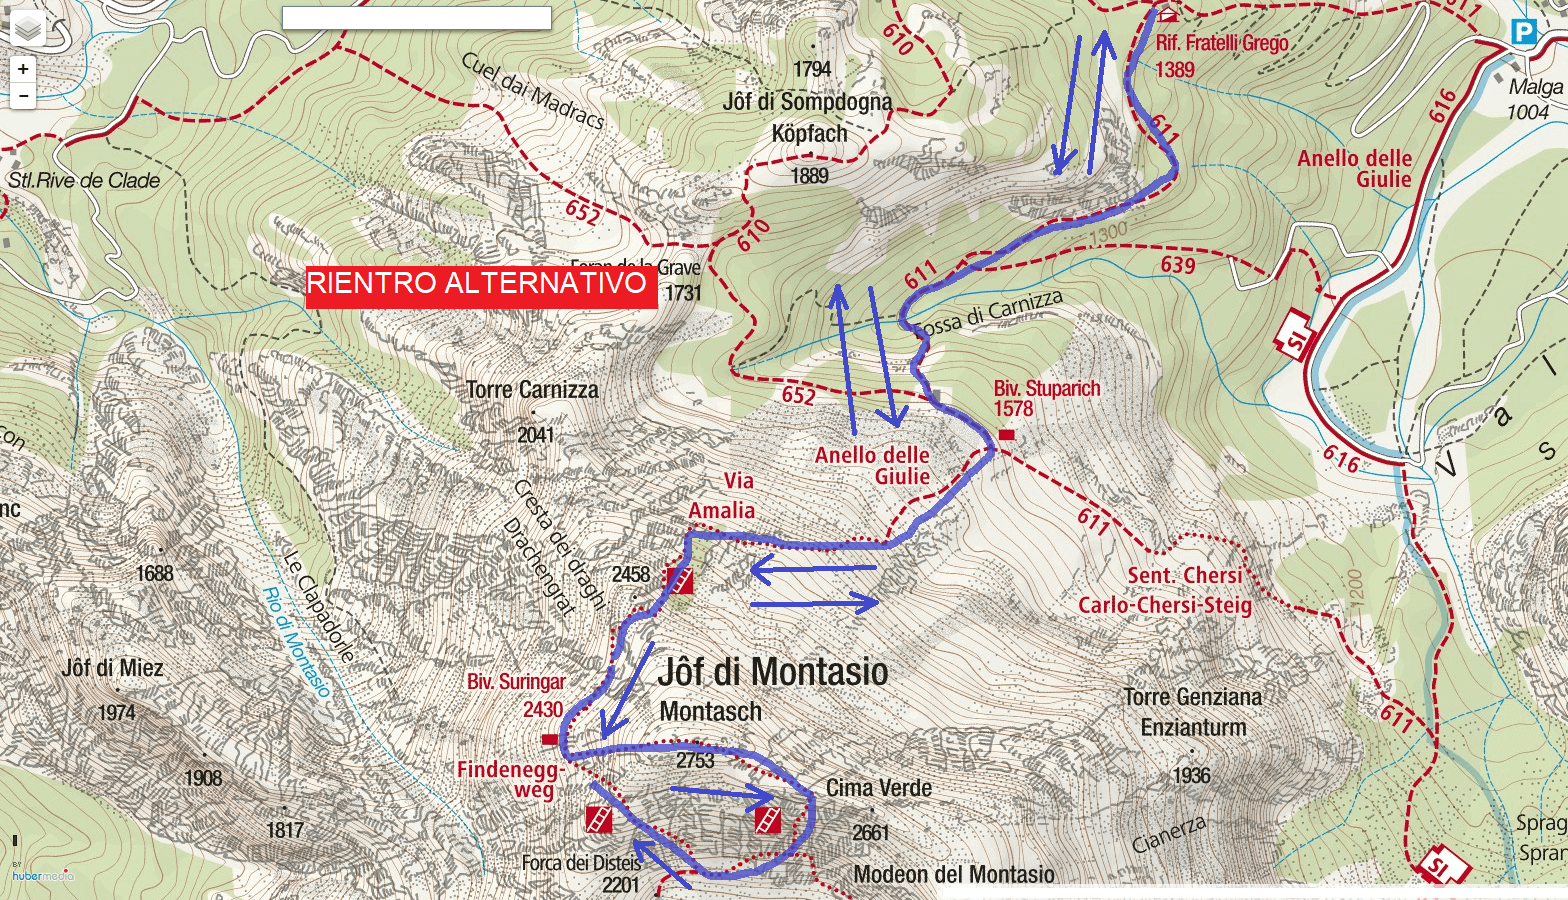 Amalia Ferrata Map Itinerary Detail 4 alternative return